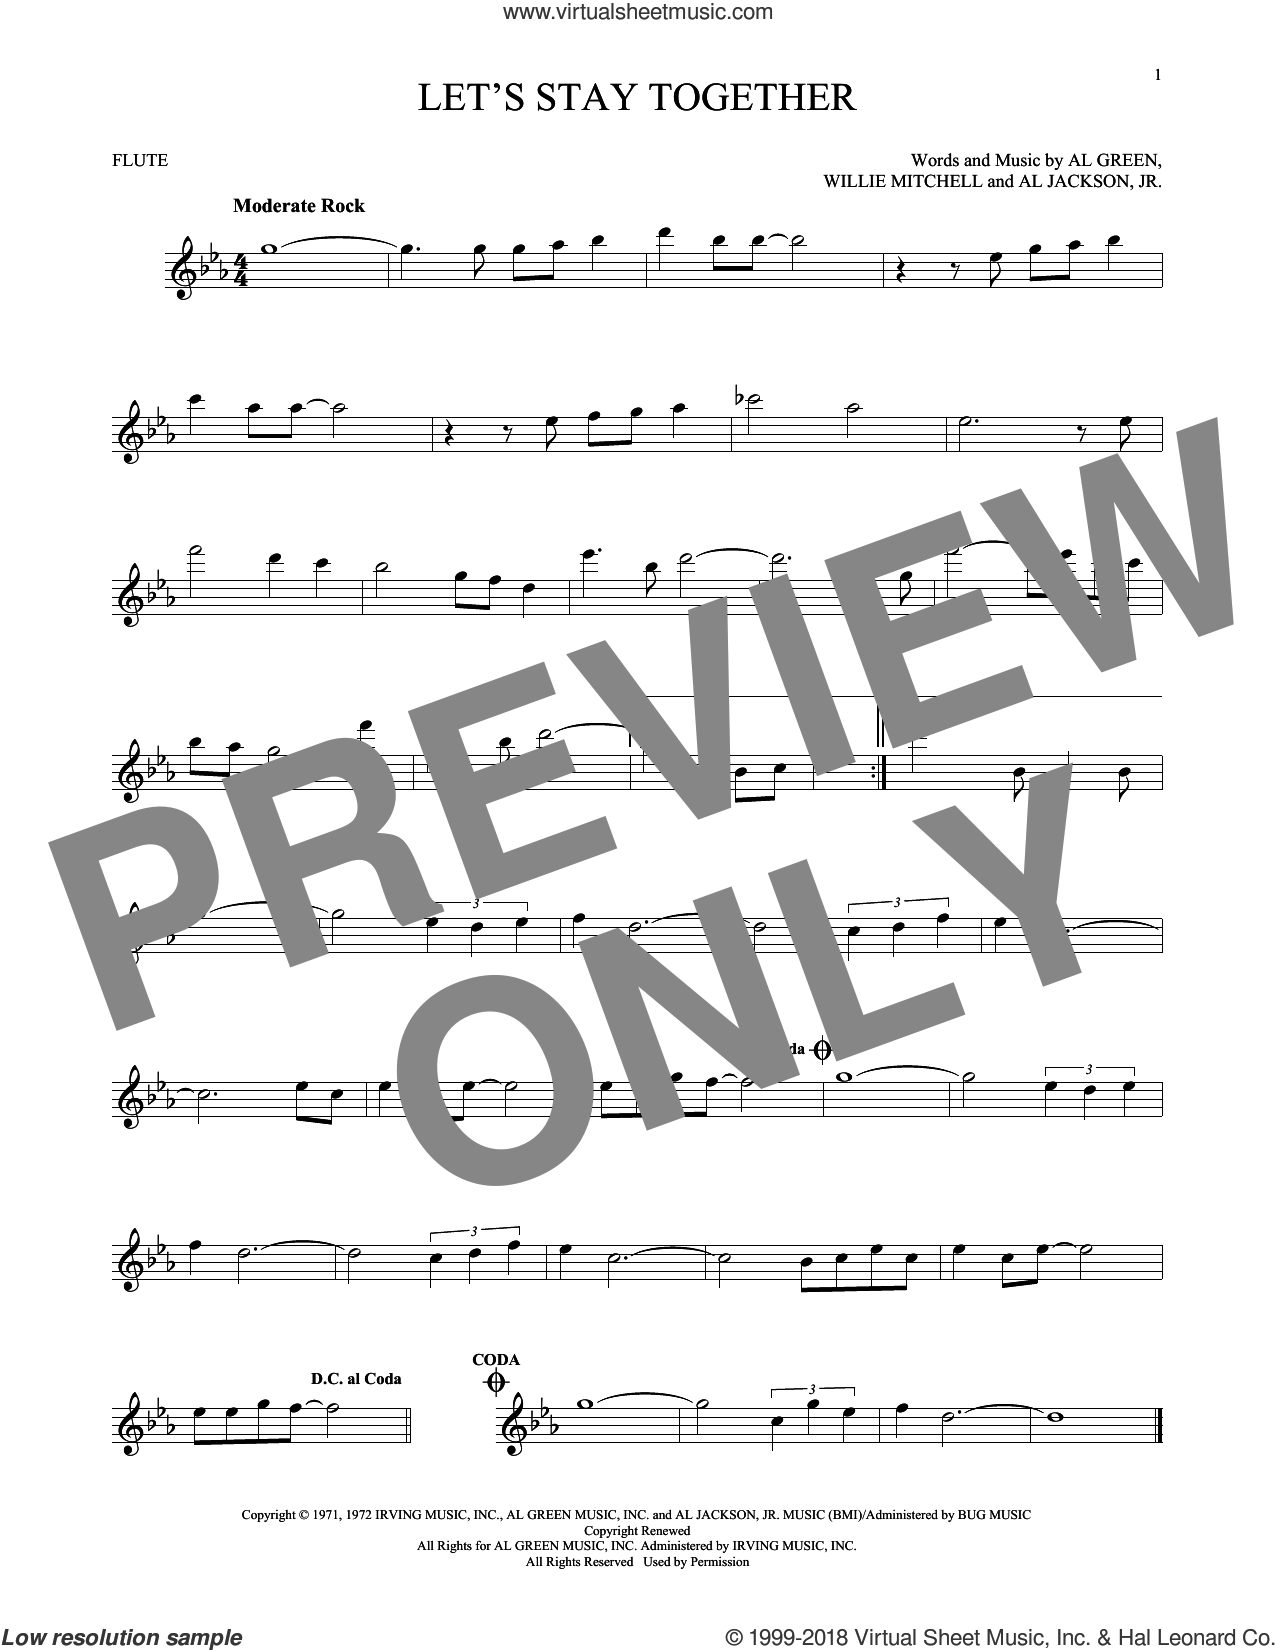 Let's Stay Together sheet music for flute solo by Al Green, Al Jackson, Jr. and Willie Mitchell, intermediate skill level